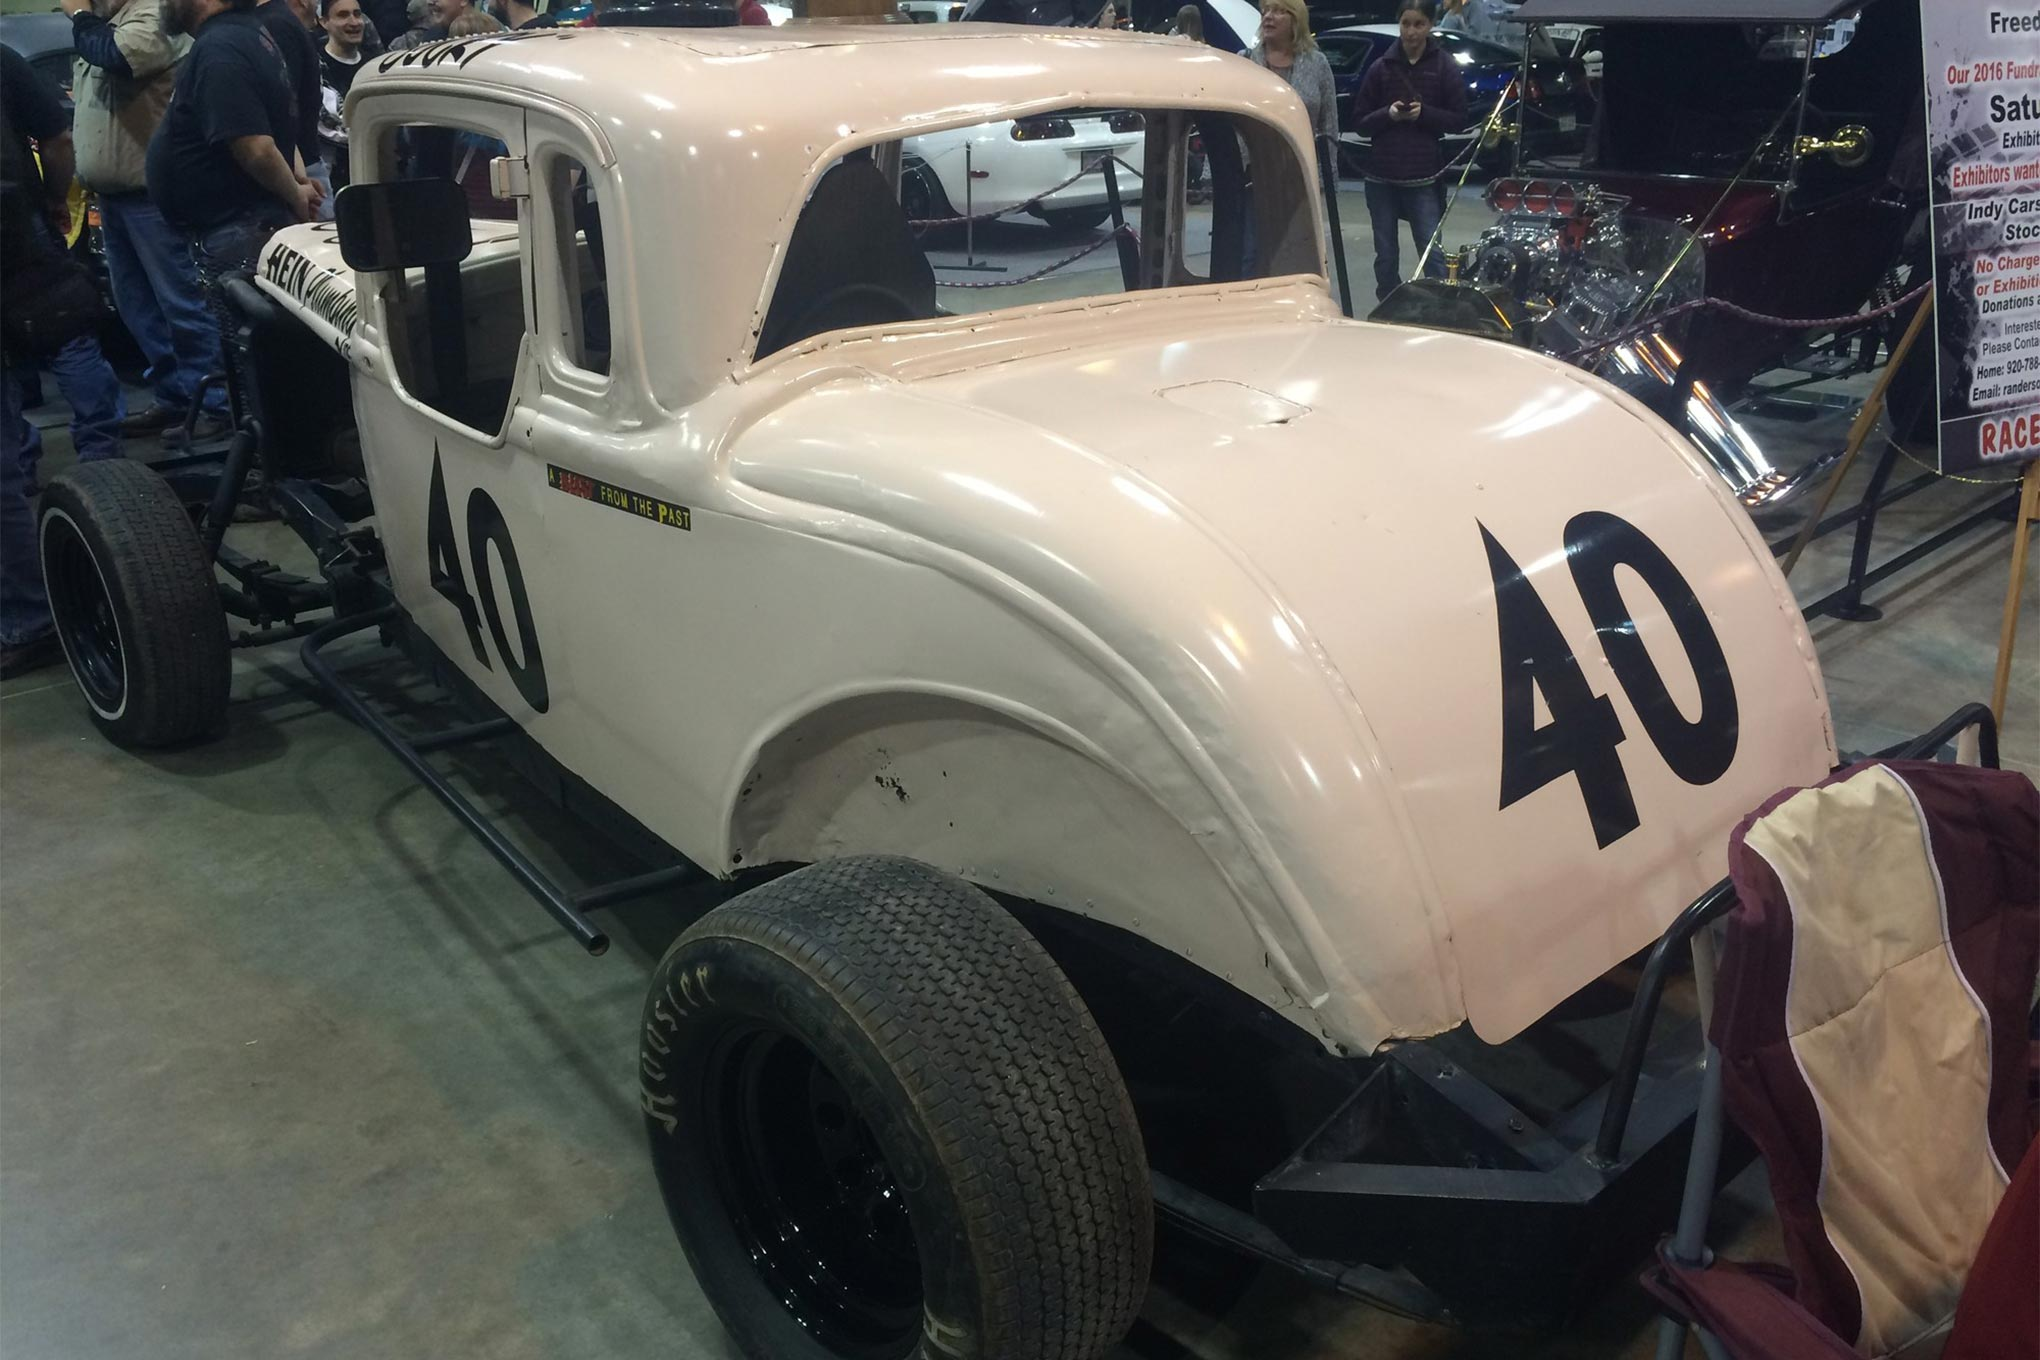 One of the most popular sights of Motorama was Bucky Wagner's '33 Coupe.  Most of it has been left original from when it was raced.